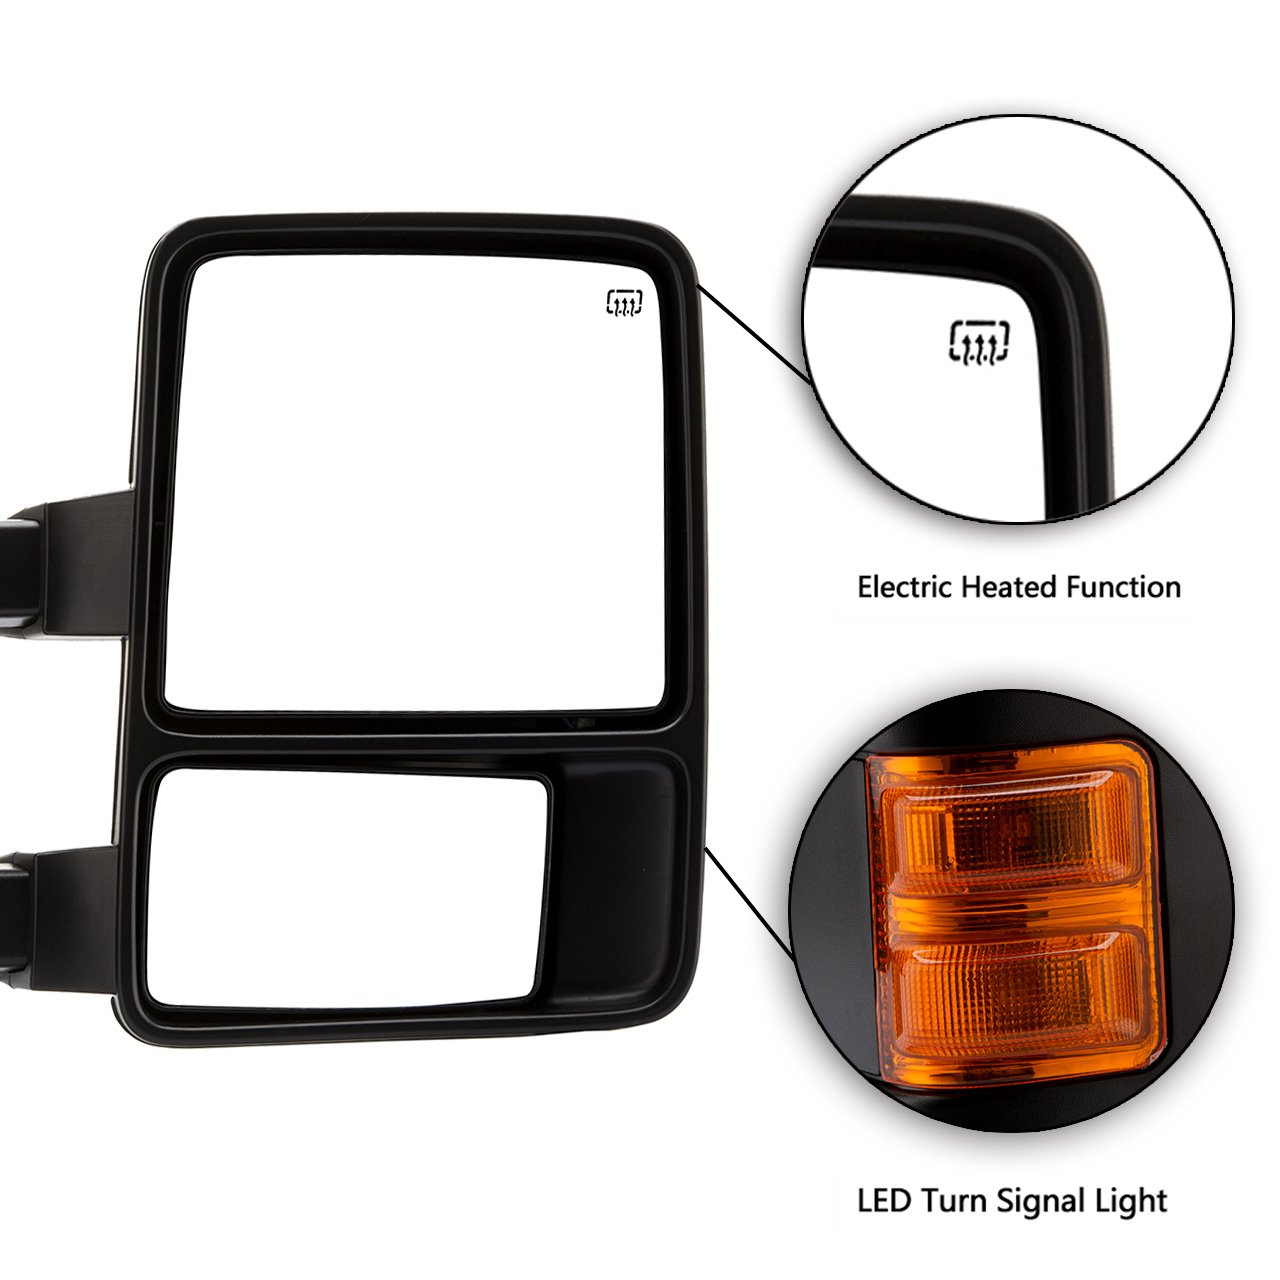 Dedc Left Driver Side Power Heated W Turn Signal Light Ford F 350 Mirror Wiring Diagrams Towing Mirrors For 08 15 Super Duty F250 F350 F450 2008 2009 2010 2011 2012 2013